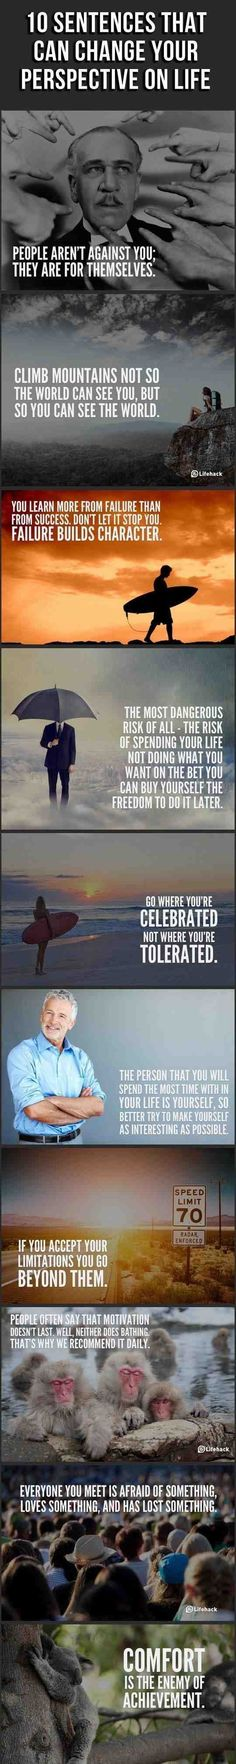 10 quotes about life